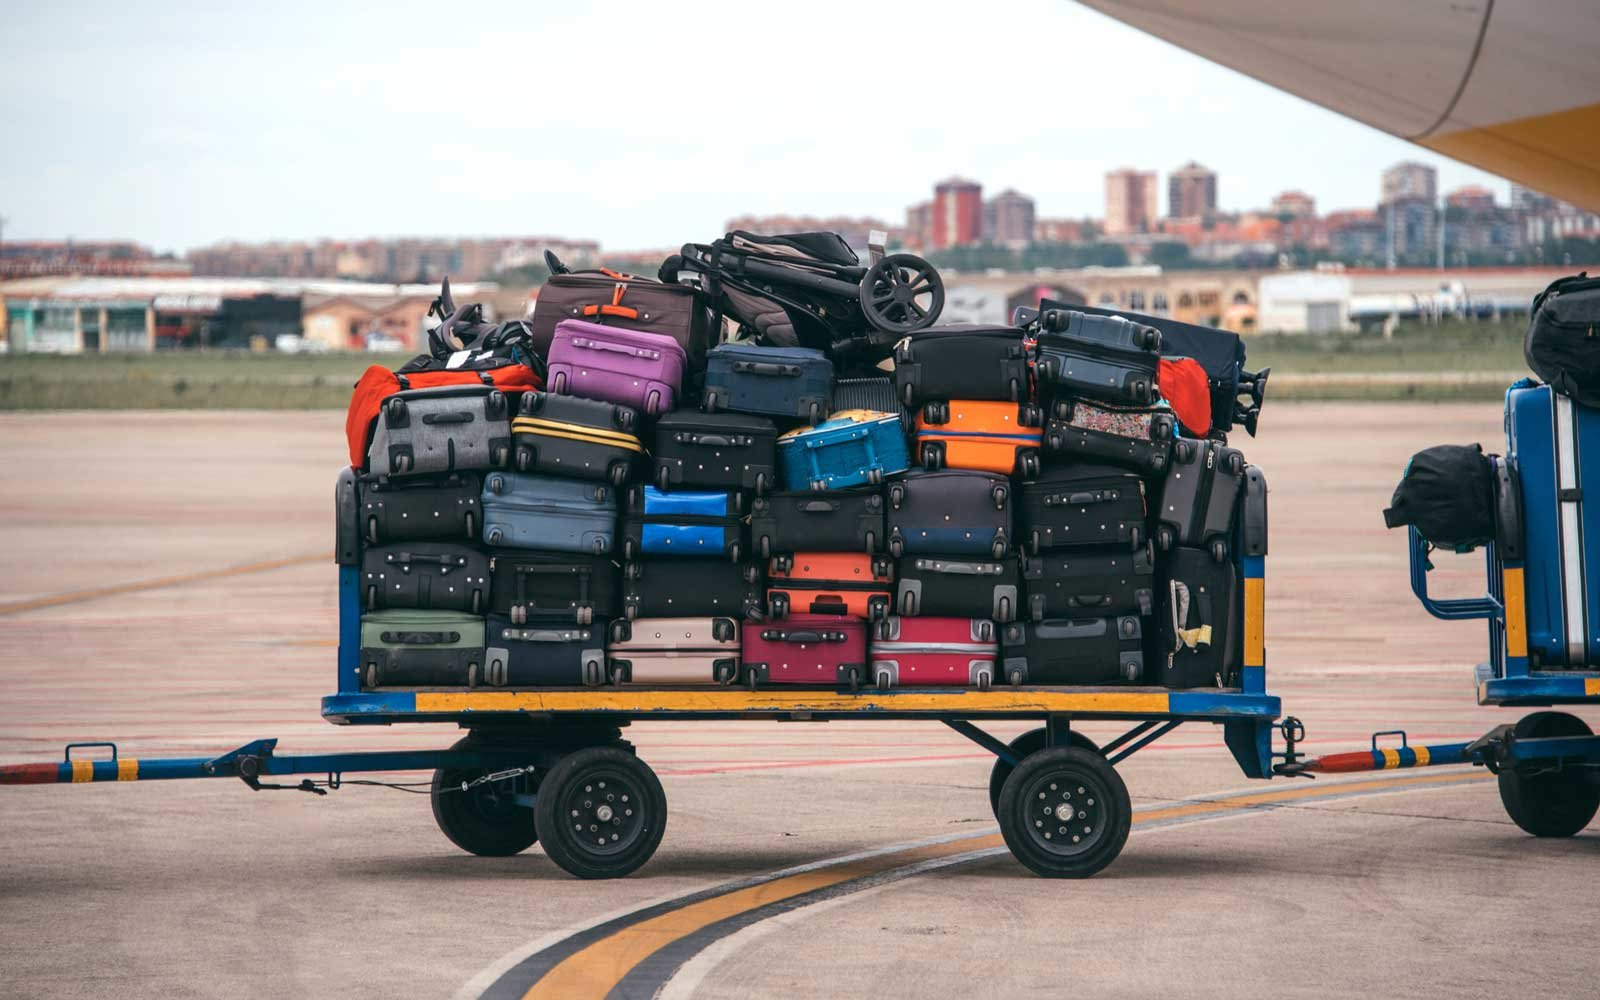 United Checked Baggage Fees Why U S Airlines Are Raising Their Baggage Fees And